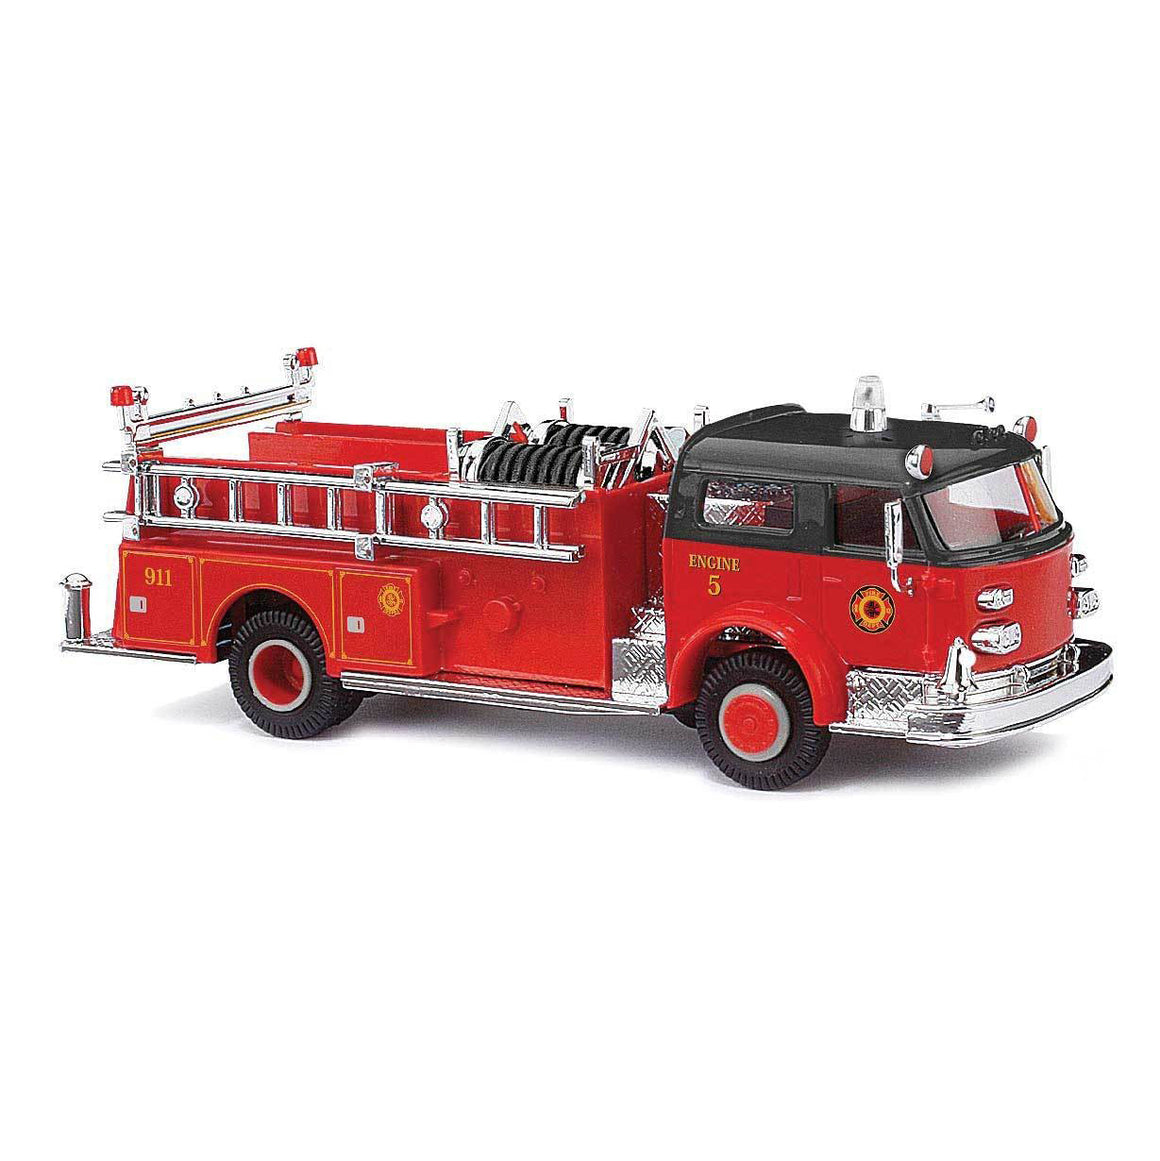 HO Scale: 1968 American-LaFrance Closed-Cab Pumper